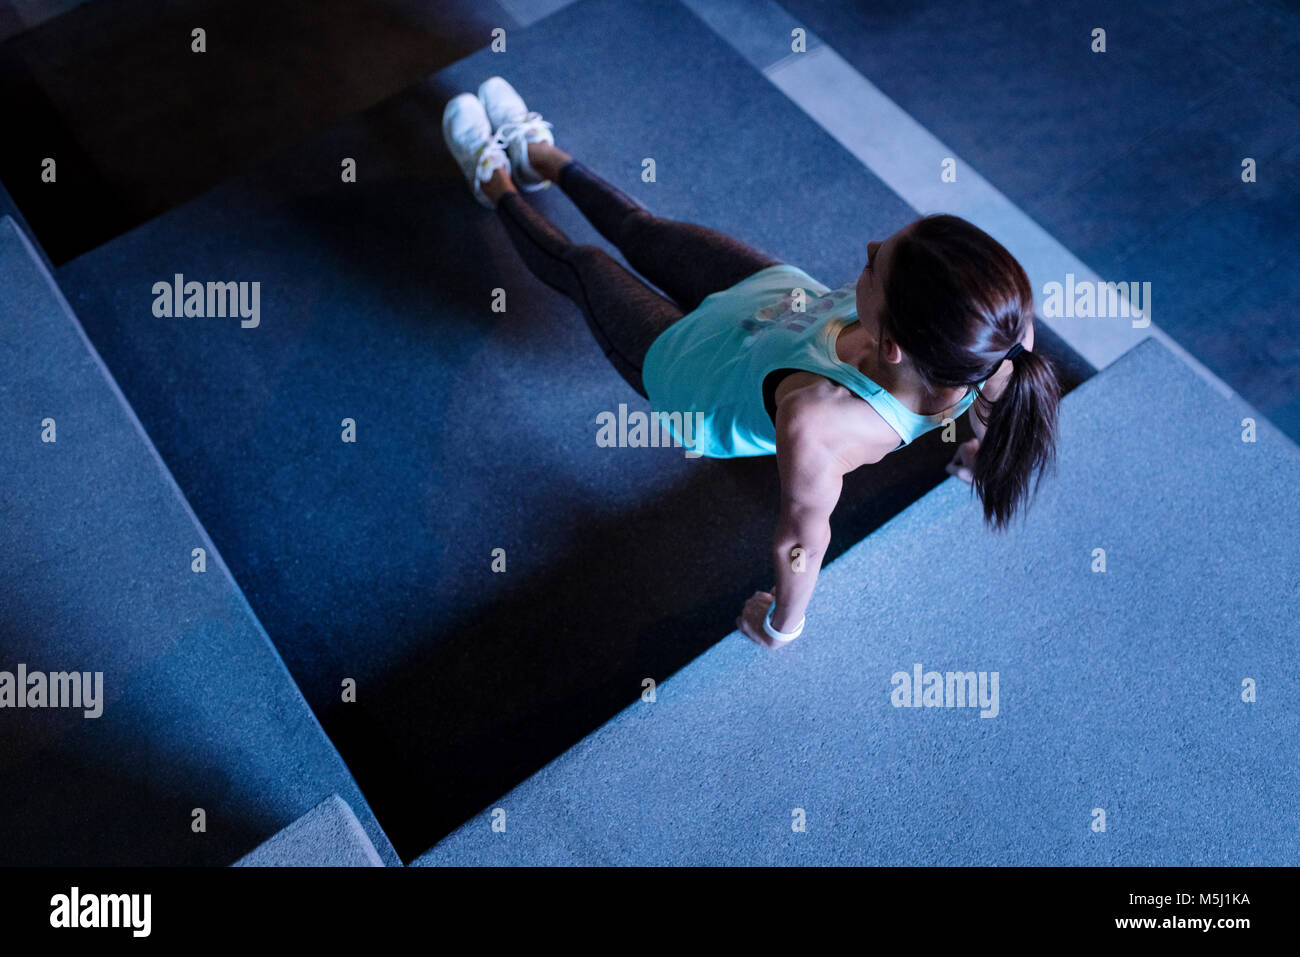 Young woman doing reverse pushups in modern urban setting at night - Stock Image